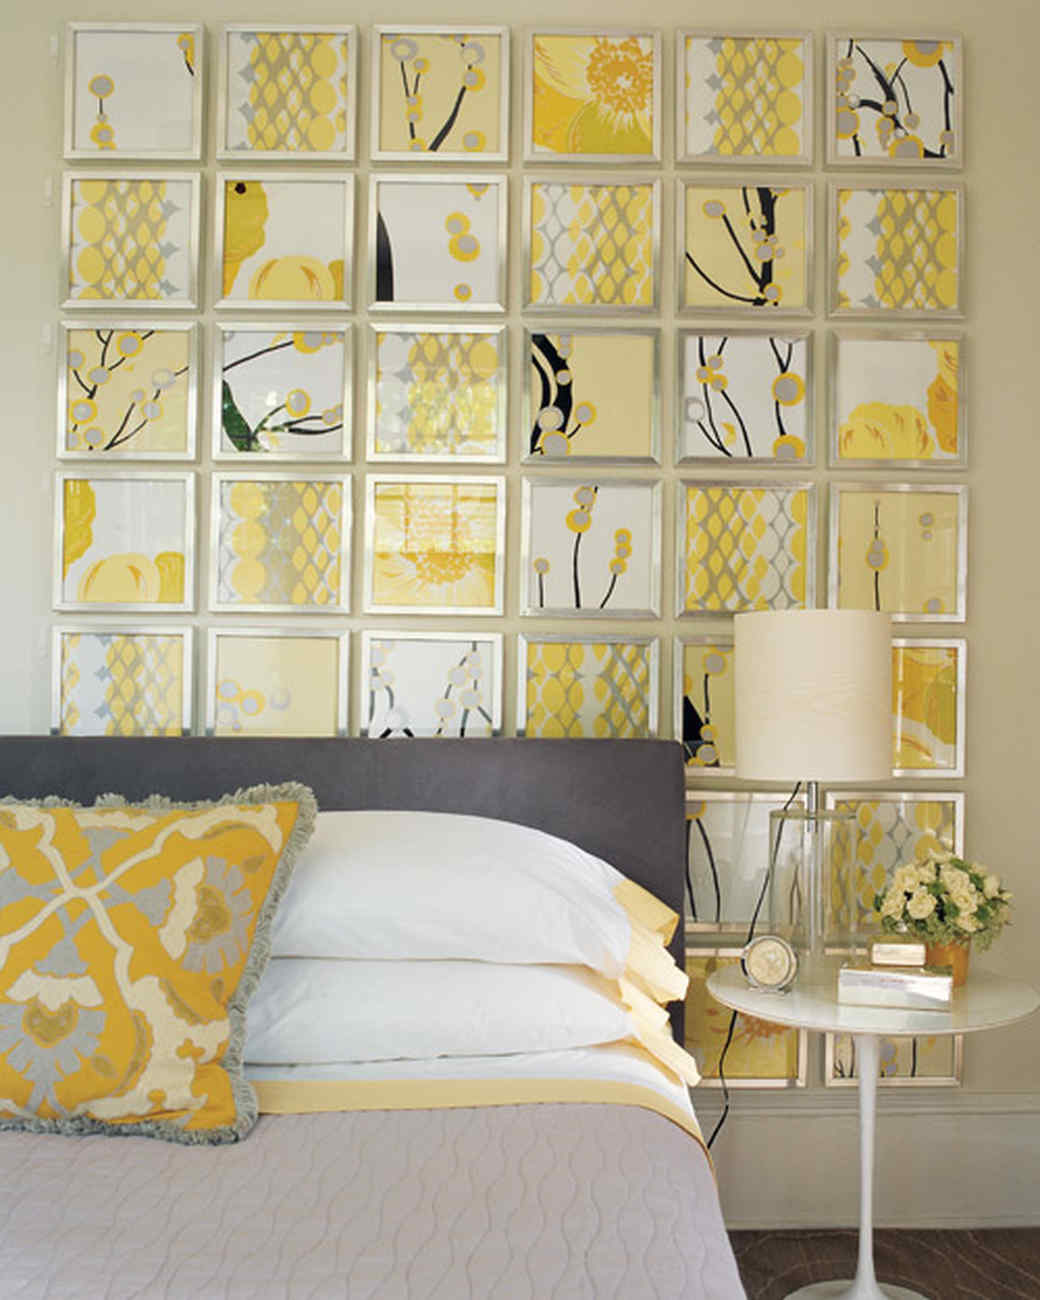 Nailed It: Budget-Friendly Wall Art and Framing Ideas | Martha Stewart